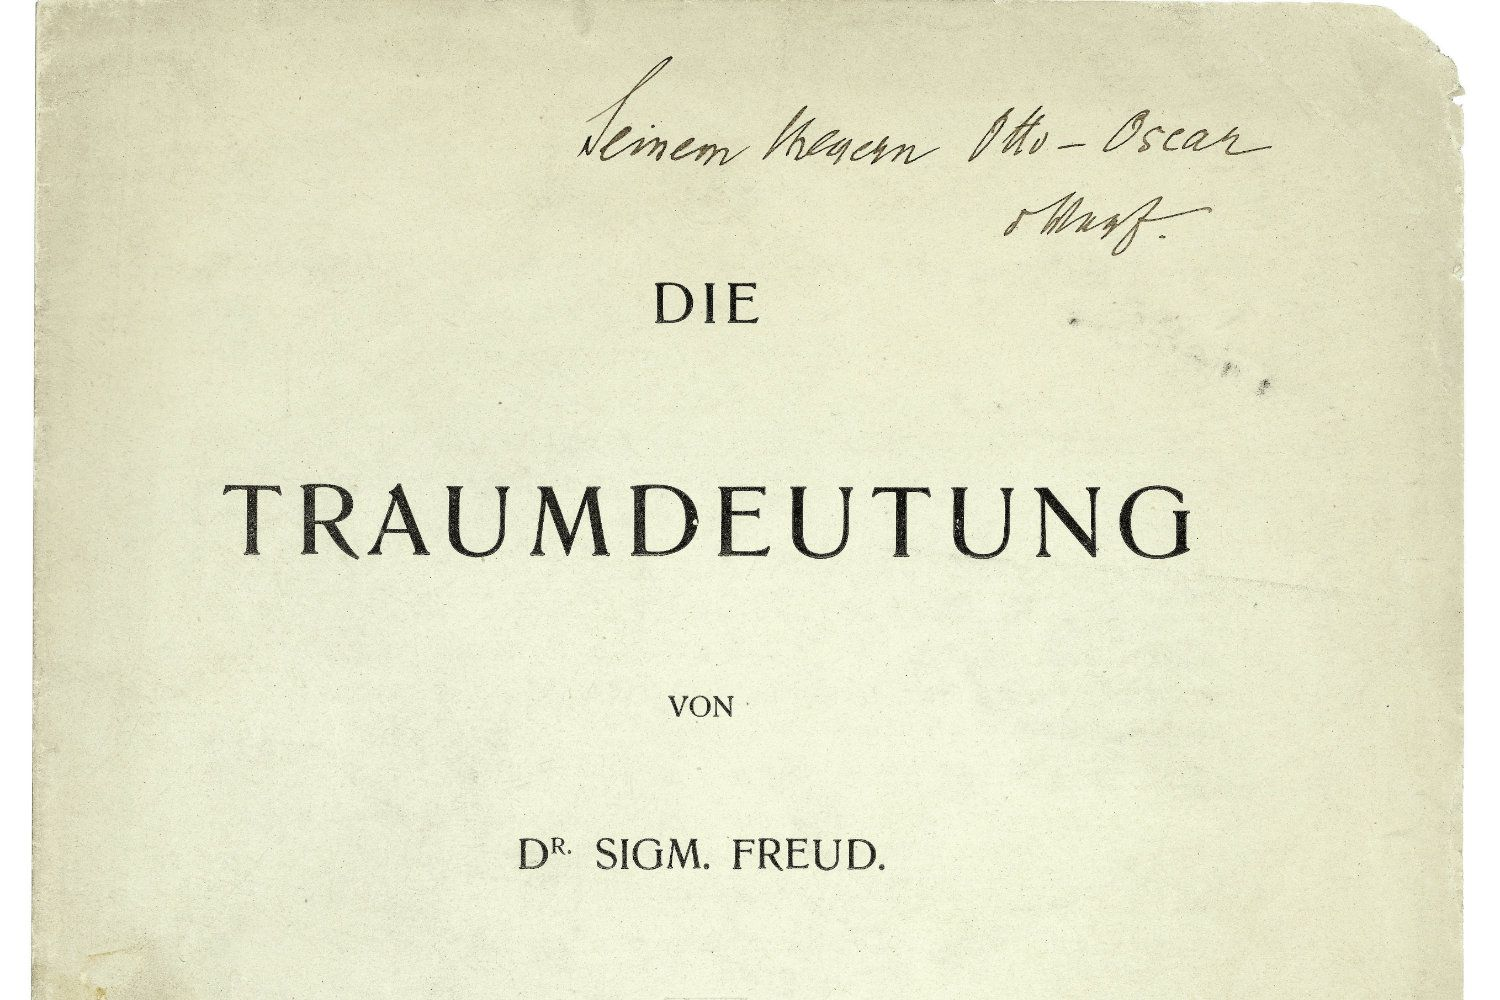 the story of oedipus and the interpretation of sigmund freud Sigmund freud and the oedipus complex sigmund freud (may 6, 1856-september 23, 1939) was an austrian neurologist  and the co-founder of the psychoanalytic school of psychology.